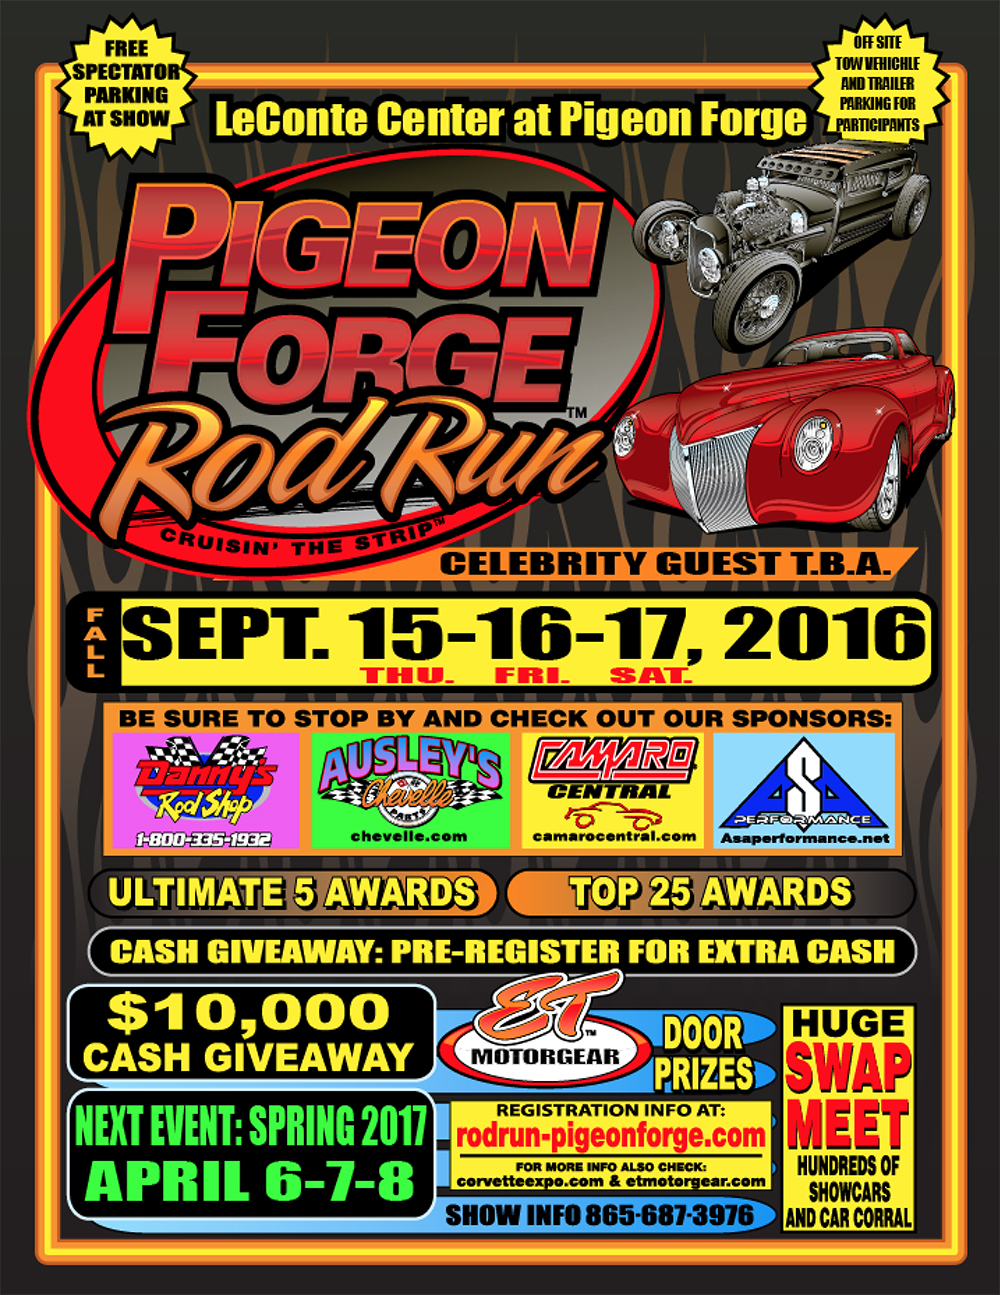 Fall Grand Rod Run